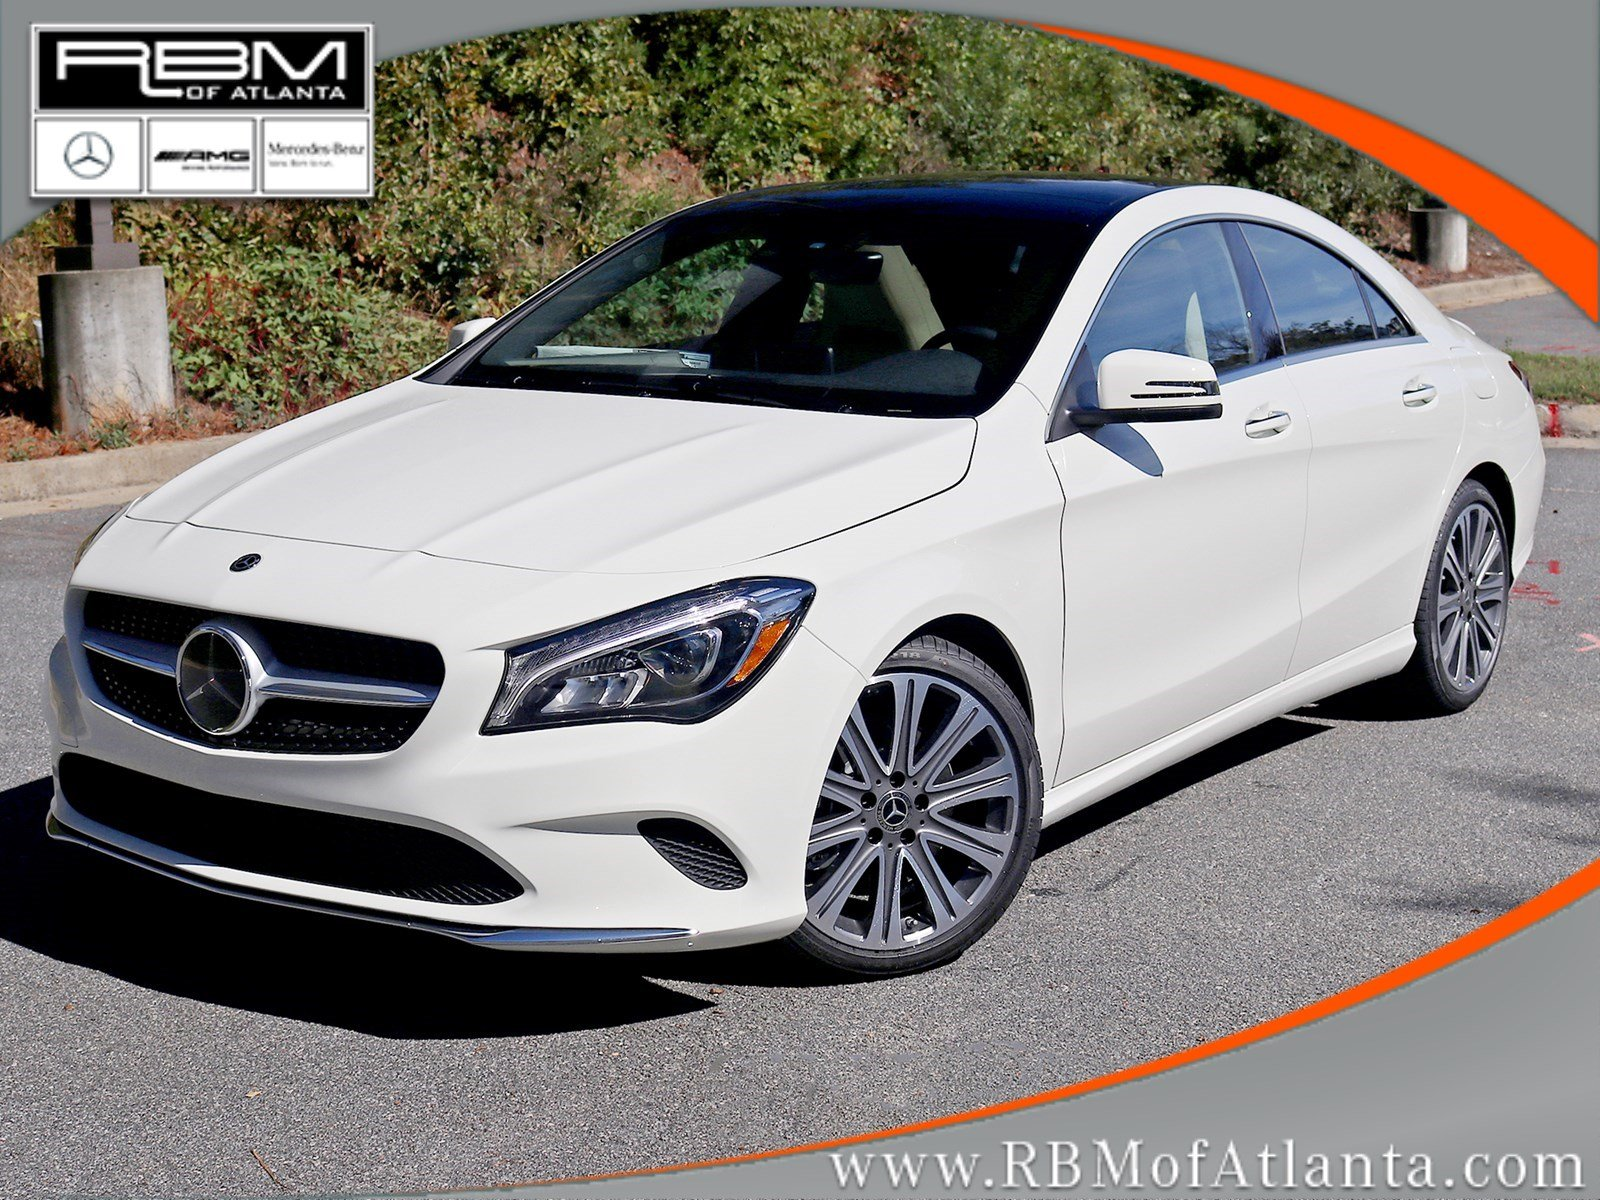 New 2018 mercedes benz cla cla 250 coupe in atlanta for 2018 mercedes benz cla 250 coupe